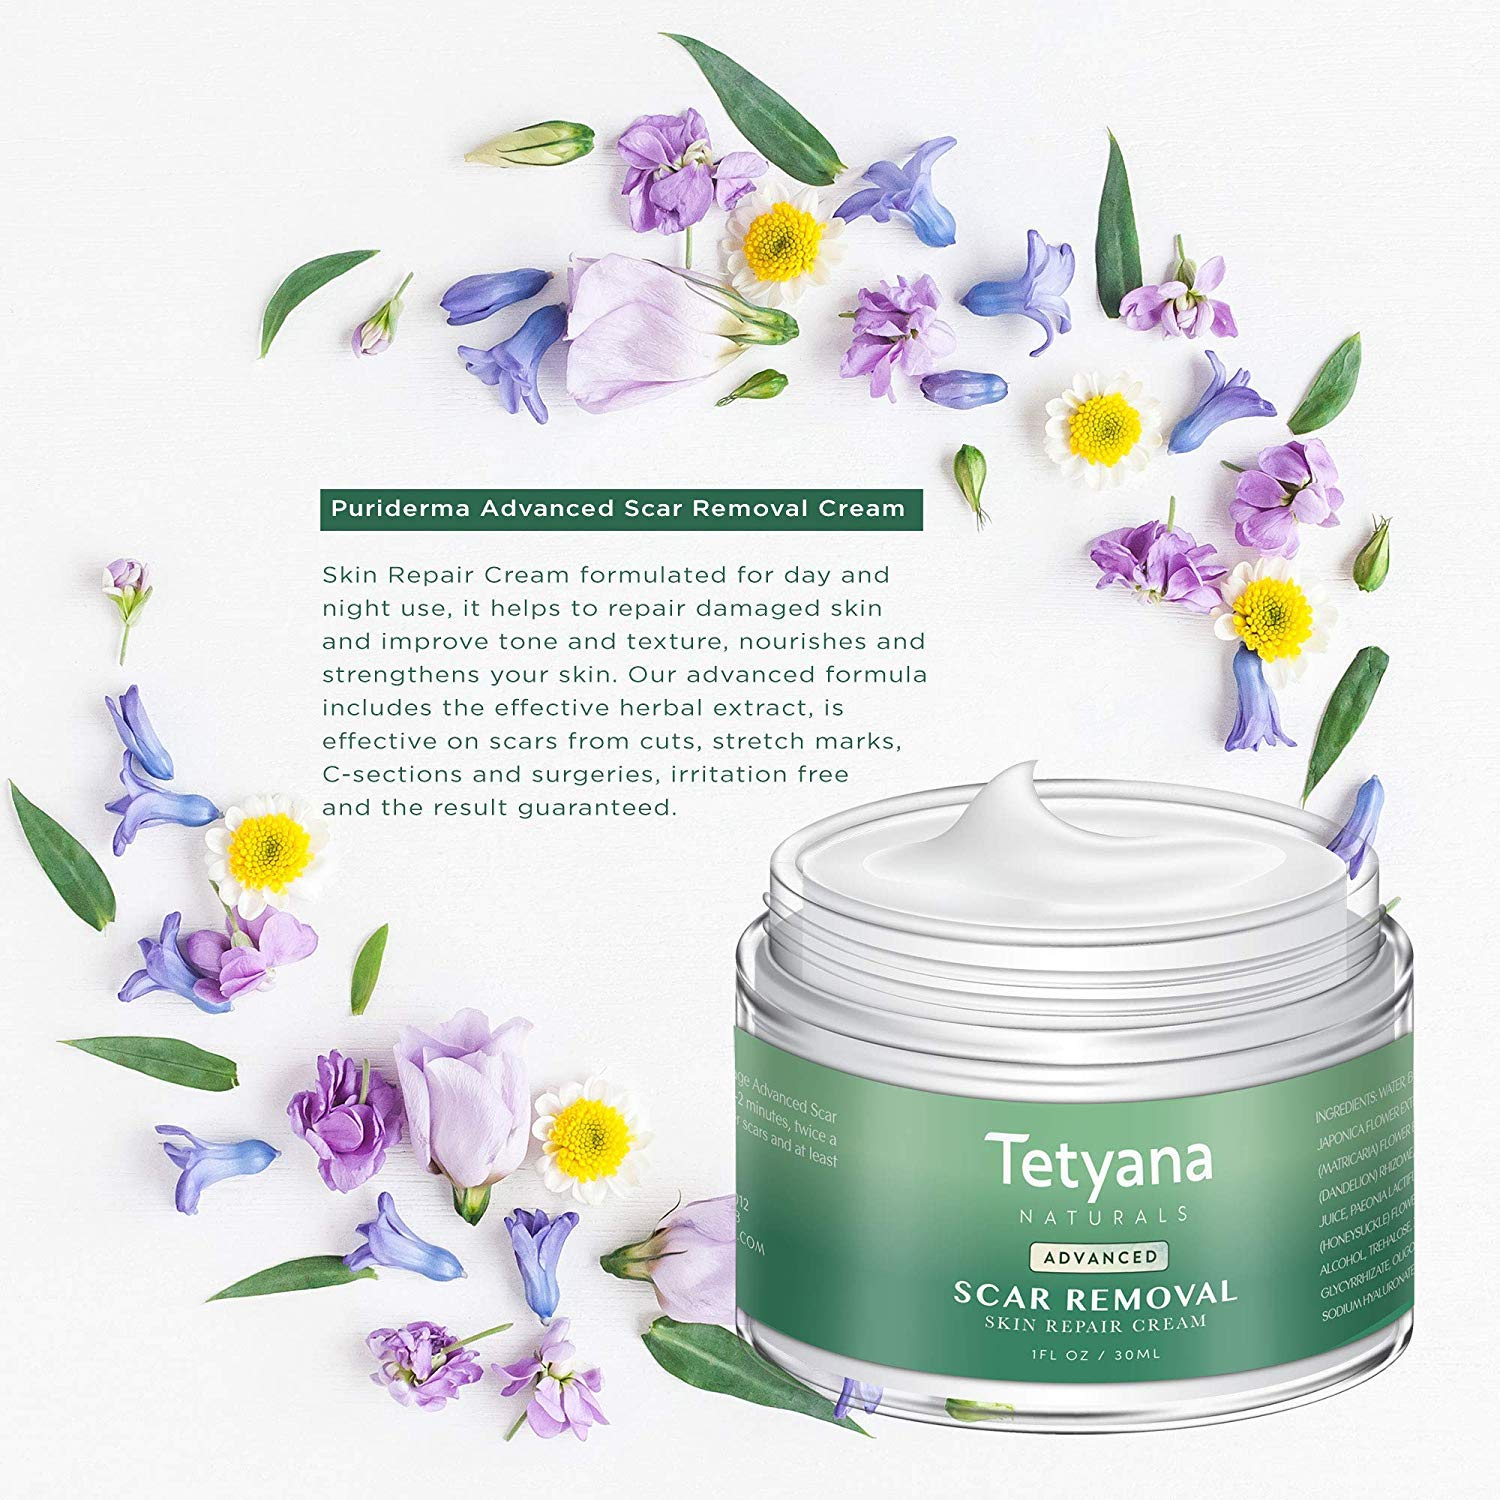 Tetyana naturals Scar Removal with Cream Natural Herbal Extracts Formula for Face & Body Old & New Scars from Cuts Stretch Marks, C-Sections & Surgeries (30ml 1pack) by Neutrogena (Image #5)